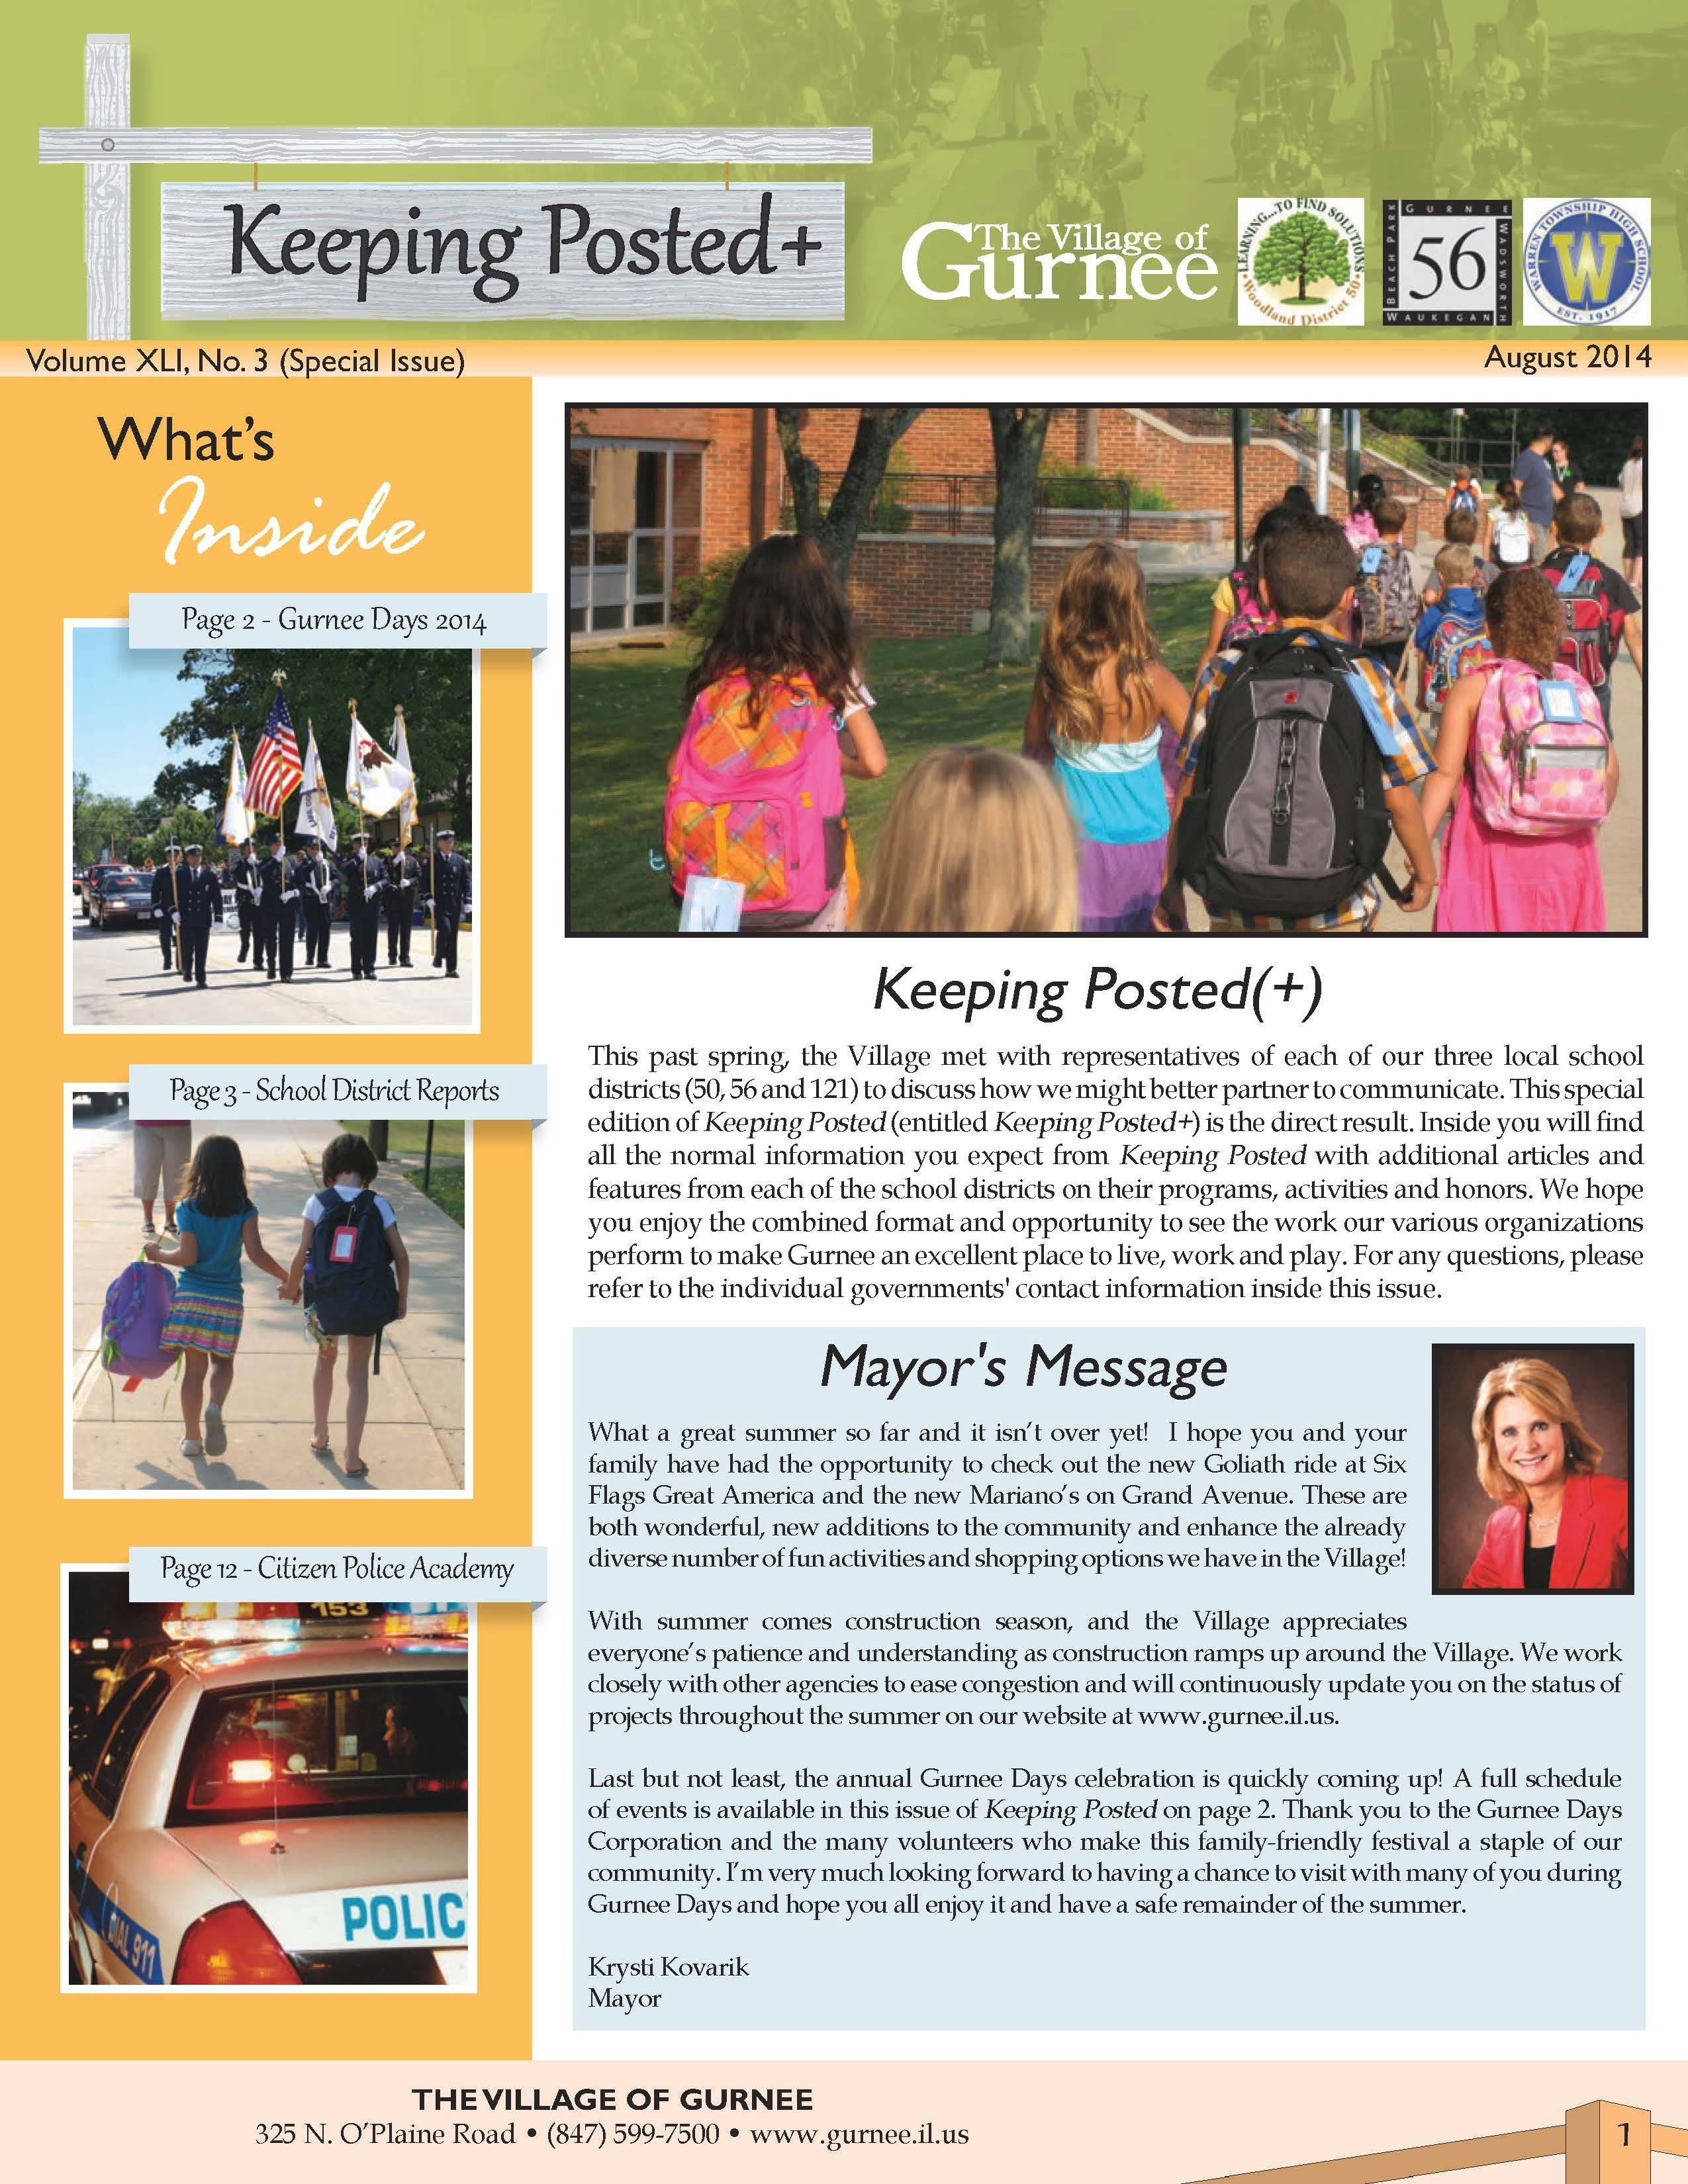 Gurnee village government has combined with three school districts to create the Keeping Posted+ newsletter. It'll land in mailboxes this week with updates from the village, Gurnee Elementary District 56, Warren Township High School District 121 and Woodland Elementary District 50.